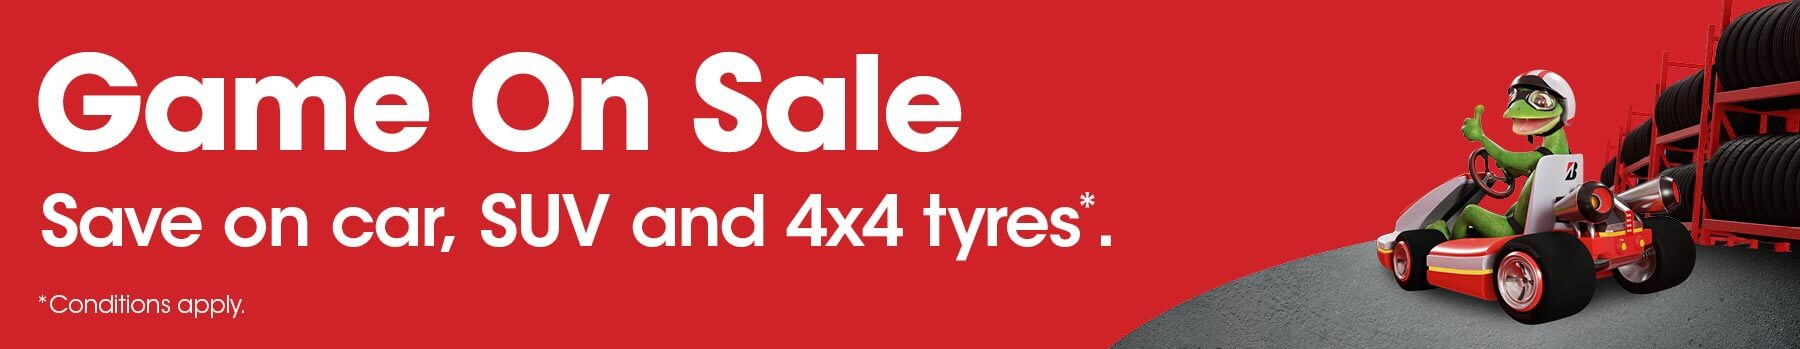 Game On Sale - Save on car, SUV and 4x4 tyres